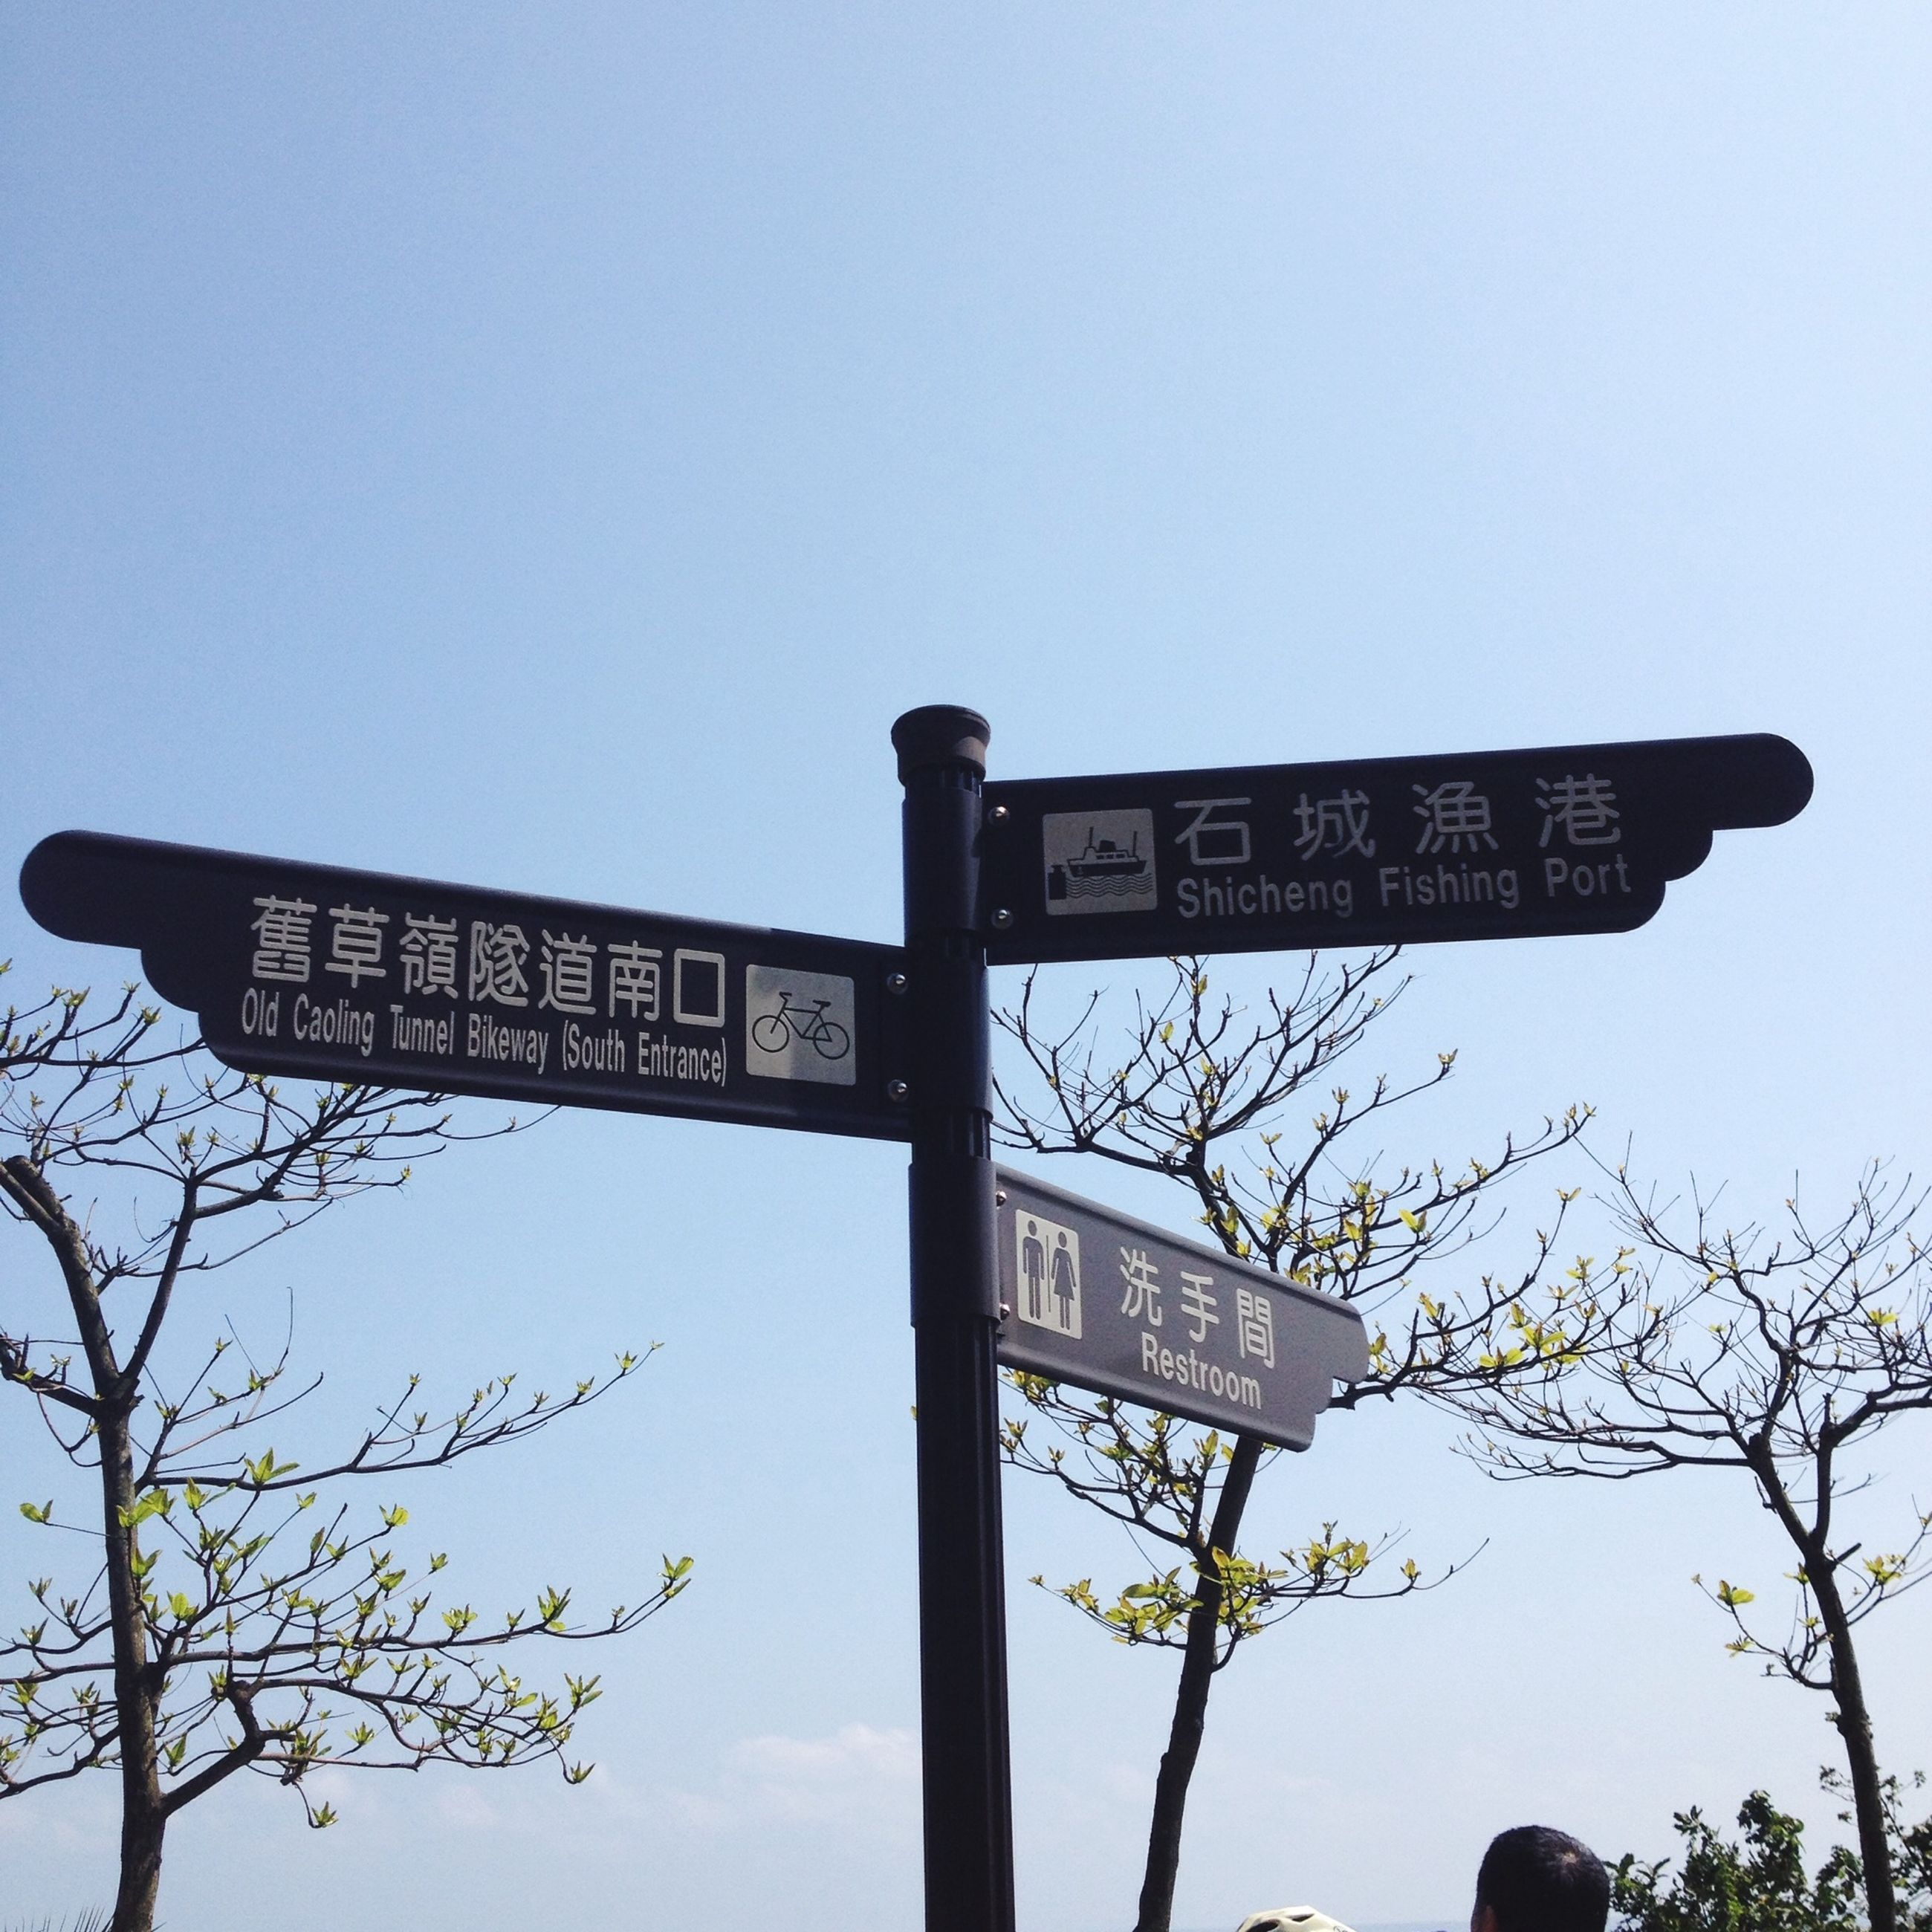 low angle view, text, communication, clear sky, western script, guidance, information sign, information, sign, directional sign, road sign, tree, direction, copy space, arrow symbol, capital letter, pole, sky, non-western script, street light